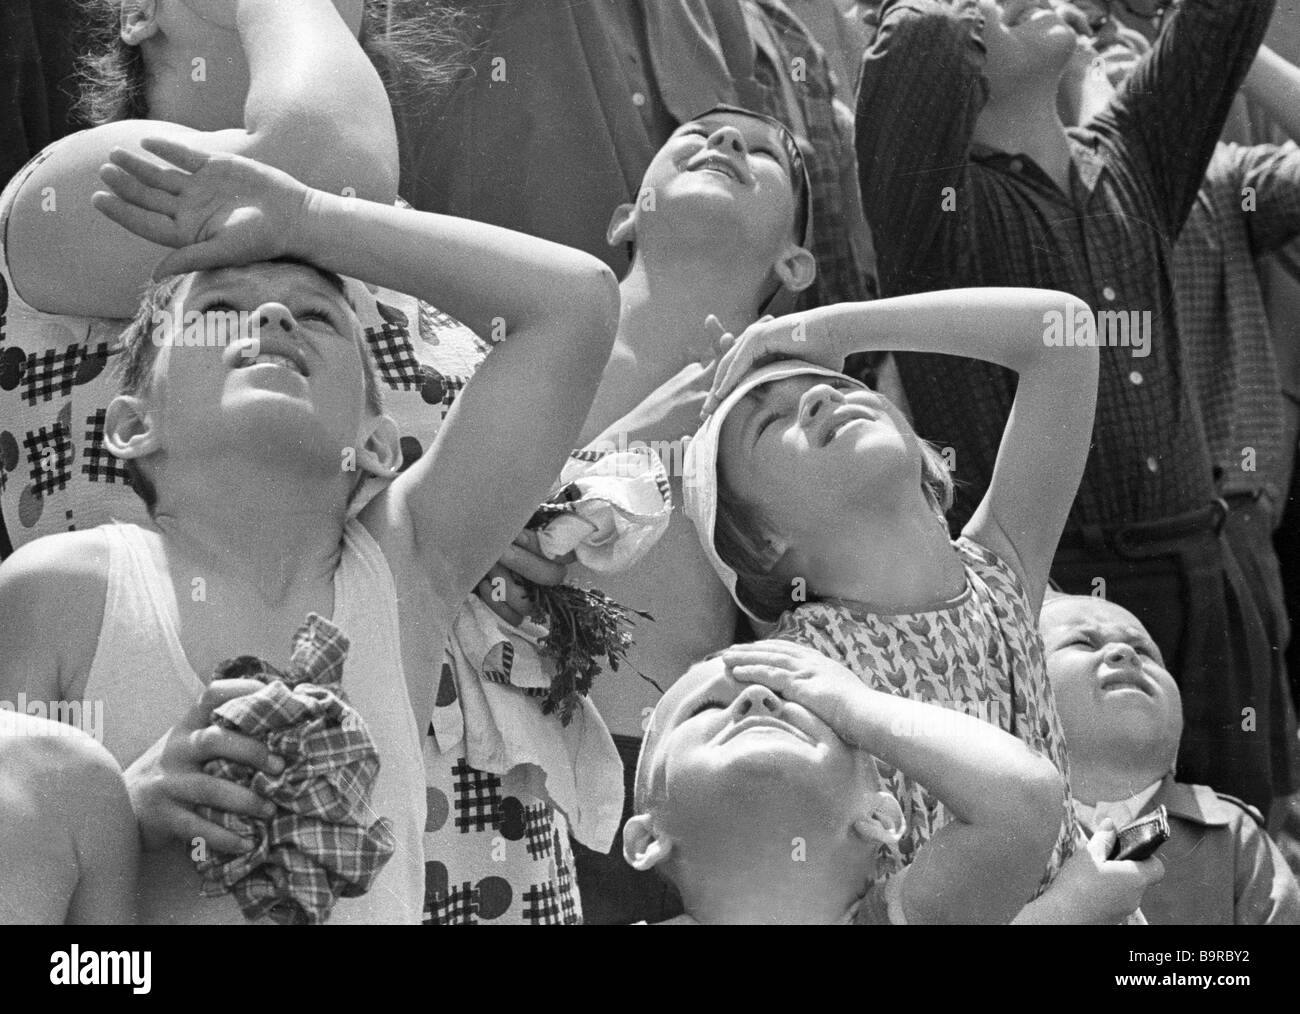 Spectators watching flying planes - Stock Image